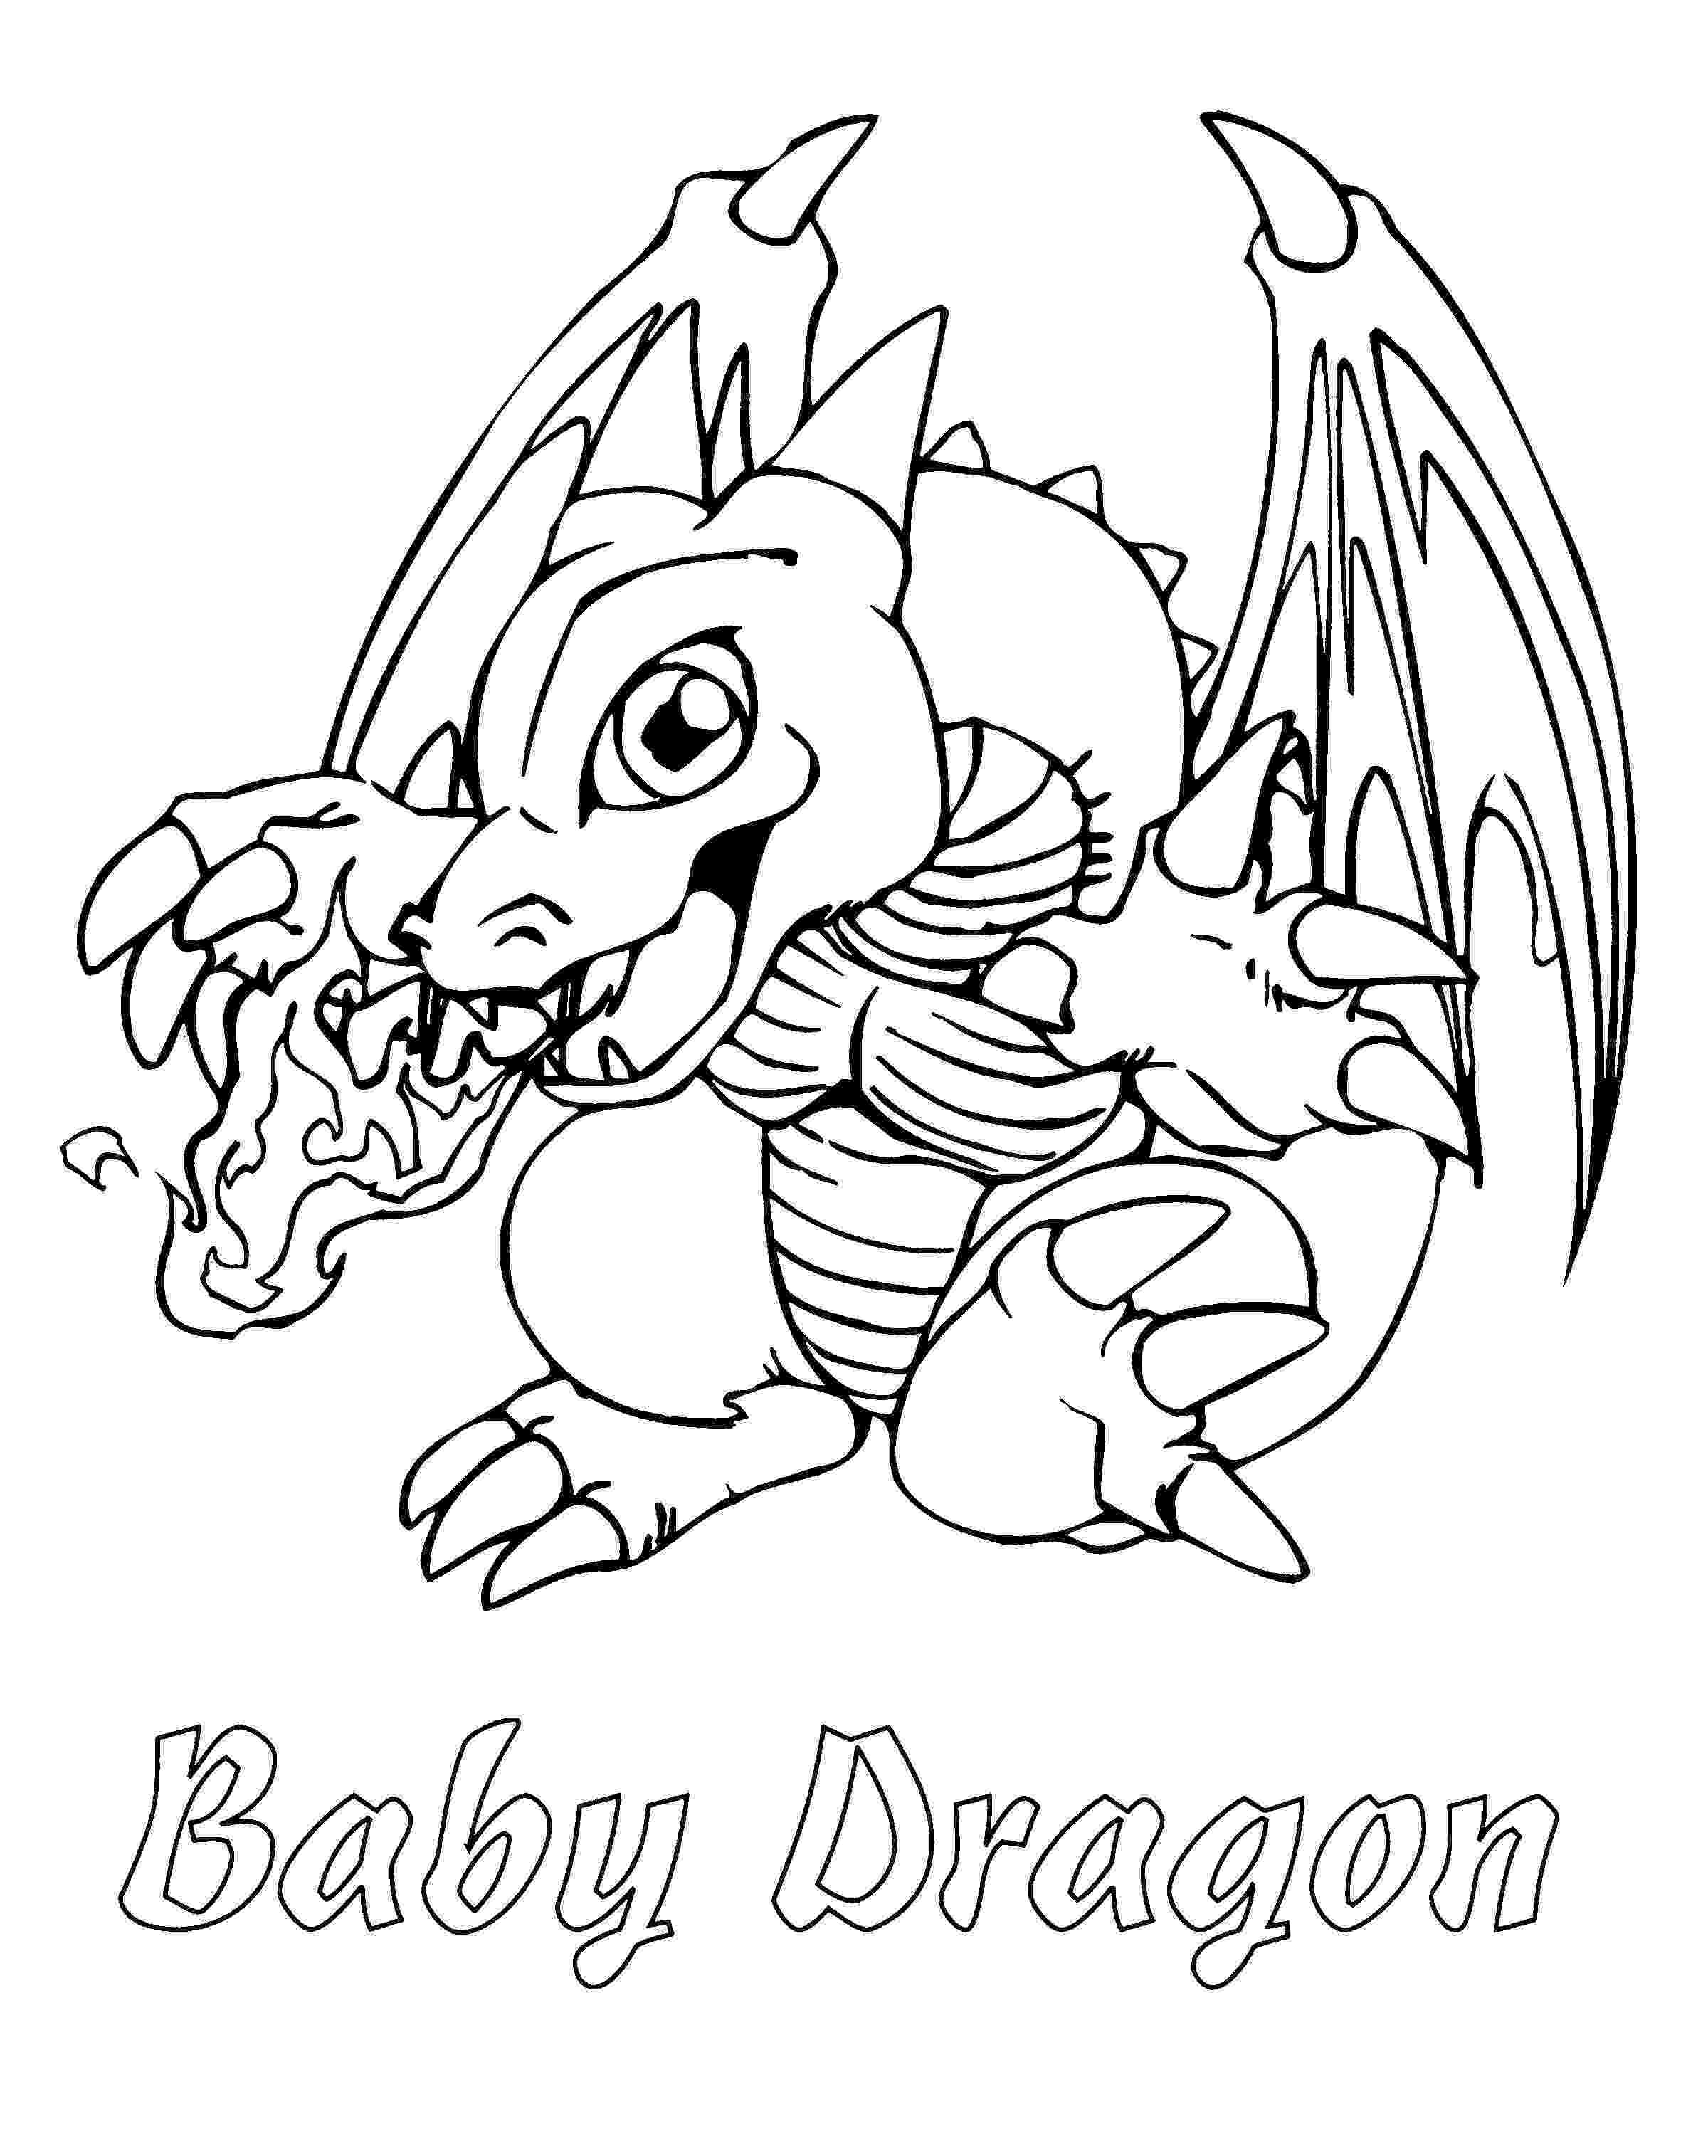 dragon coloring pages to print free printable dragon coloring pages for kids printable coloring dragon pages print to